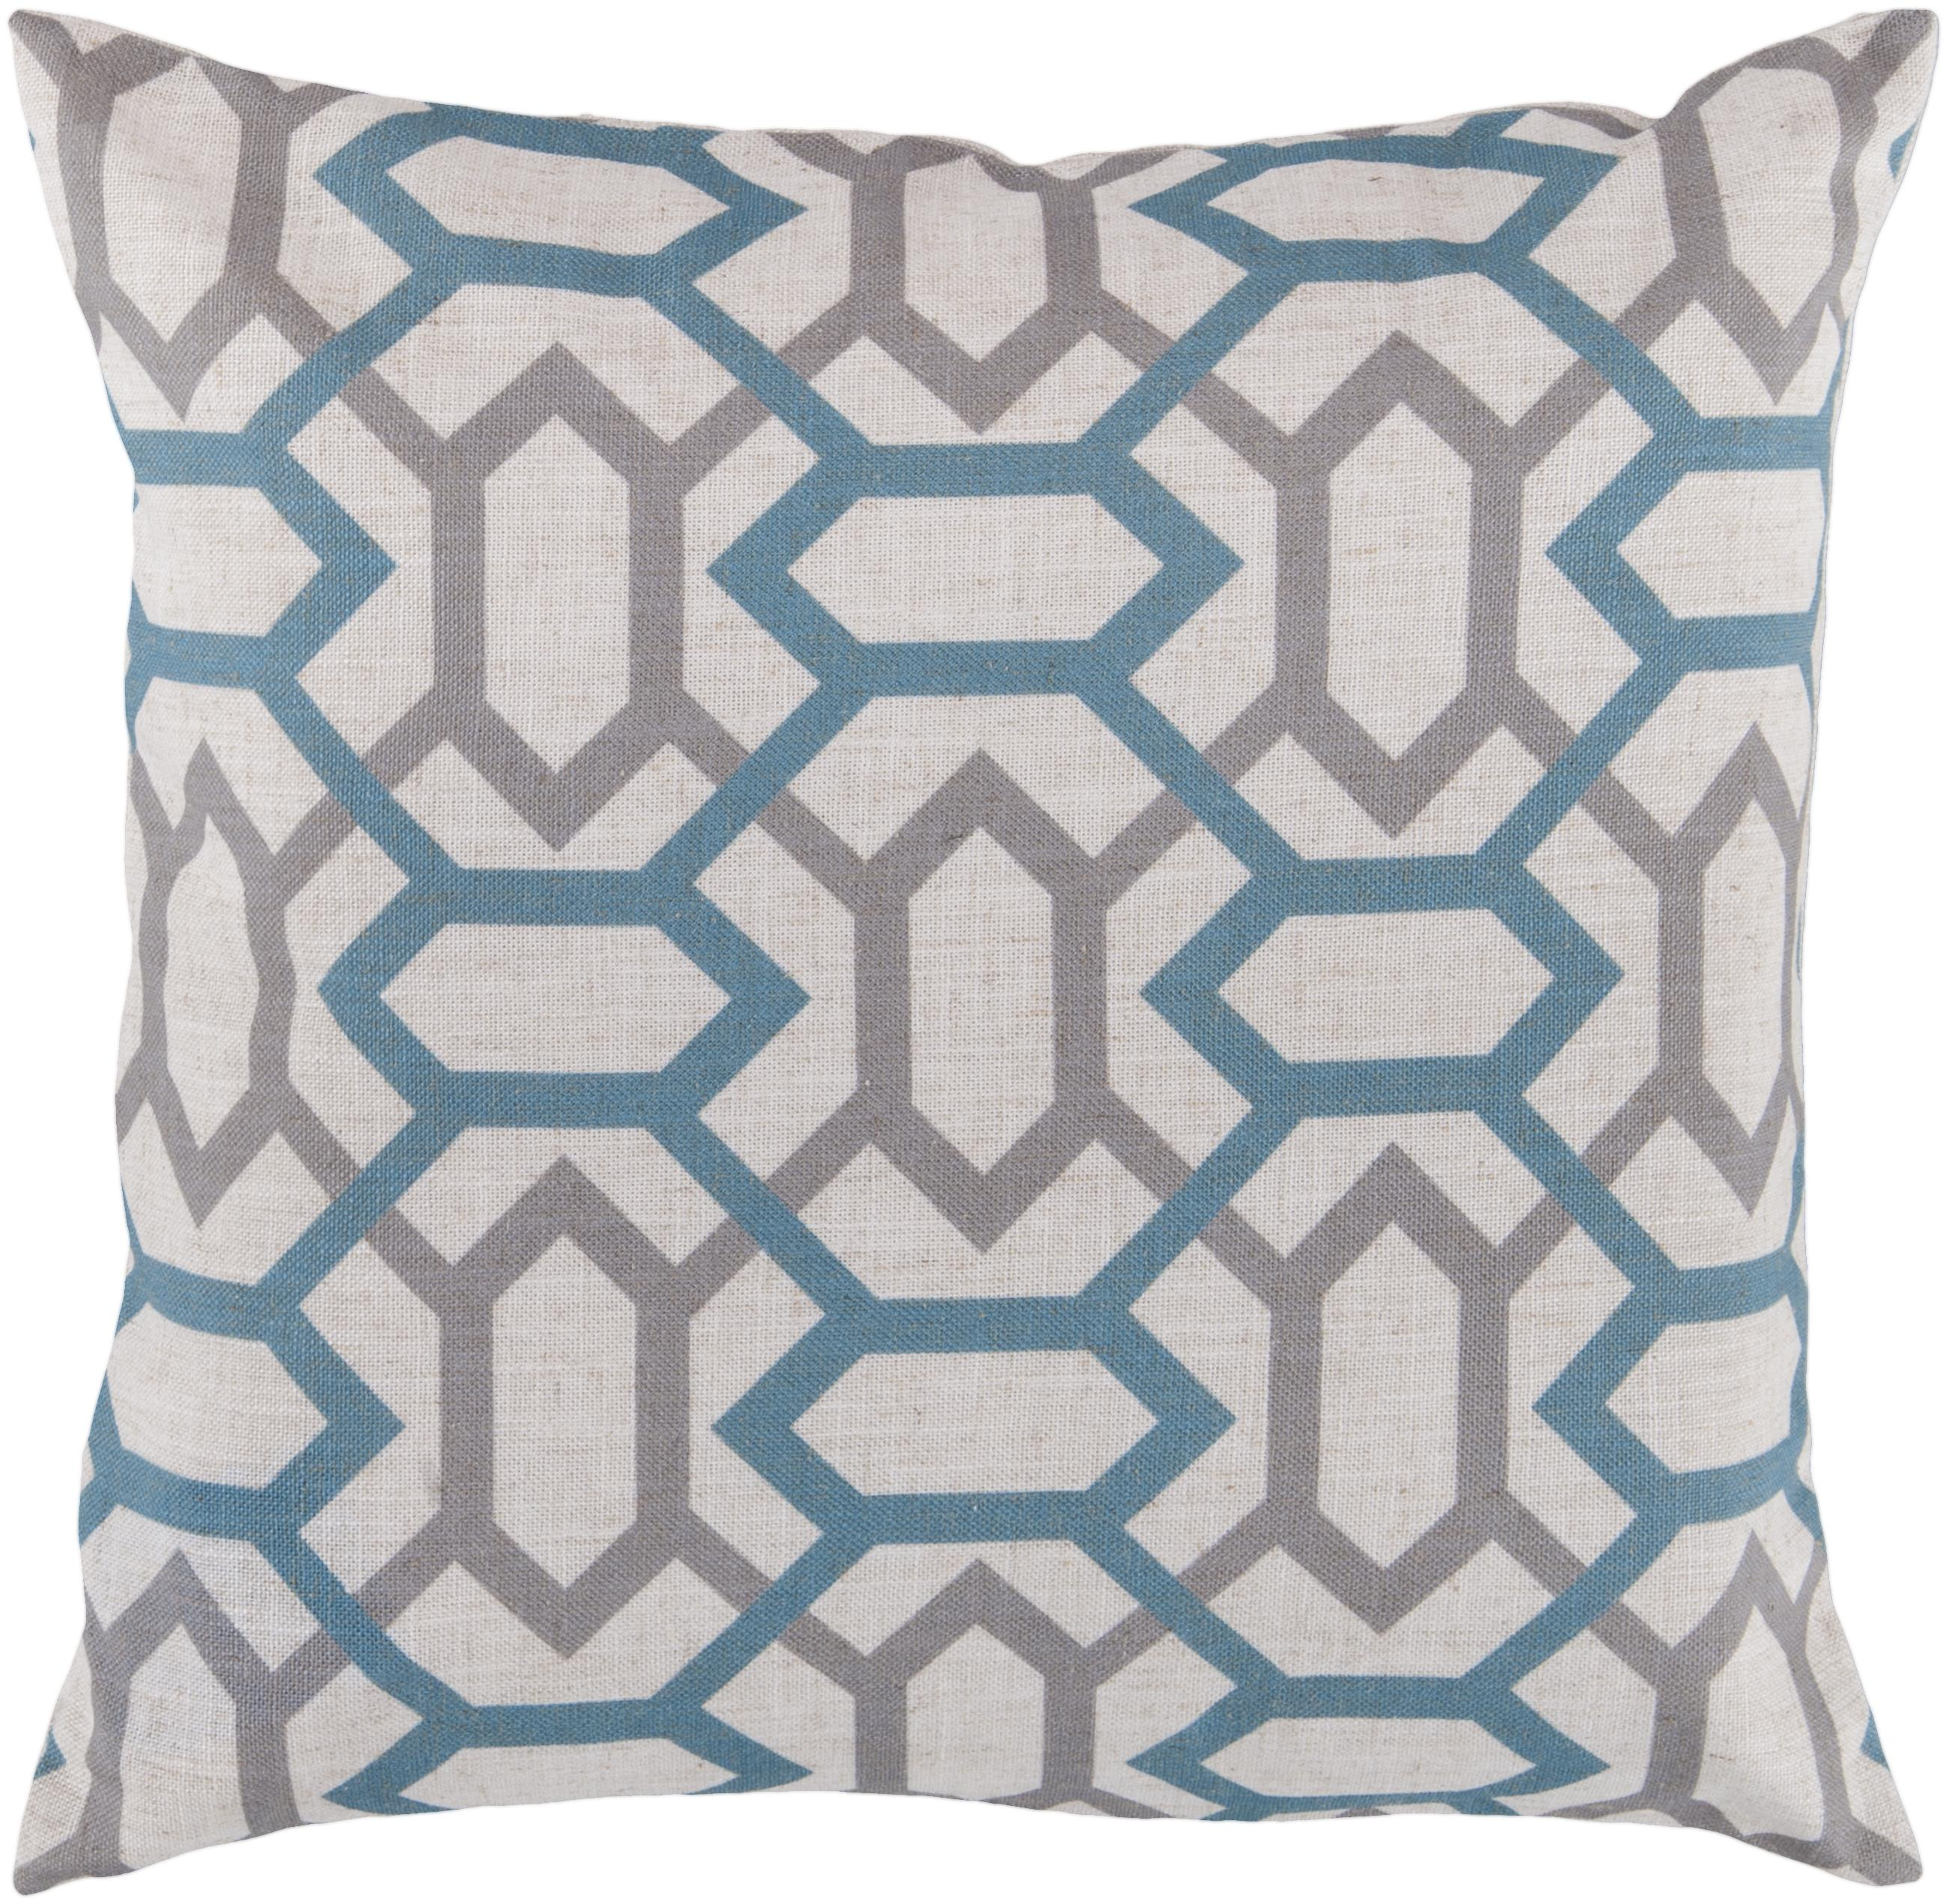 "Surya Pillows 18"" x 18"" Pillow - Item Number: FF008-1818P"